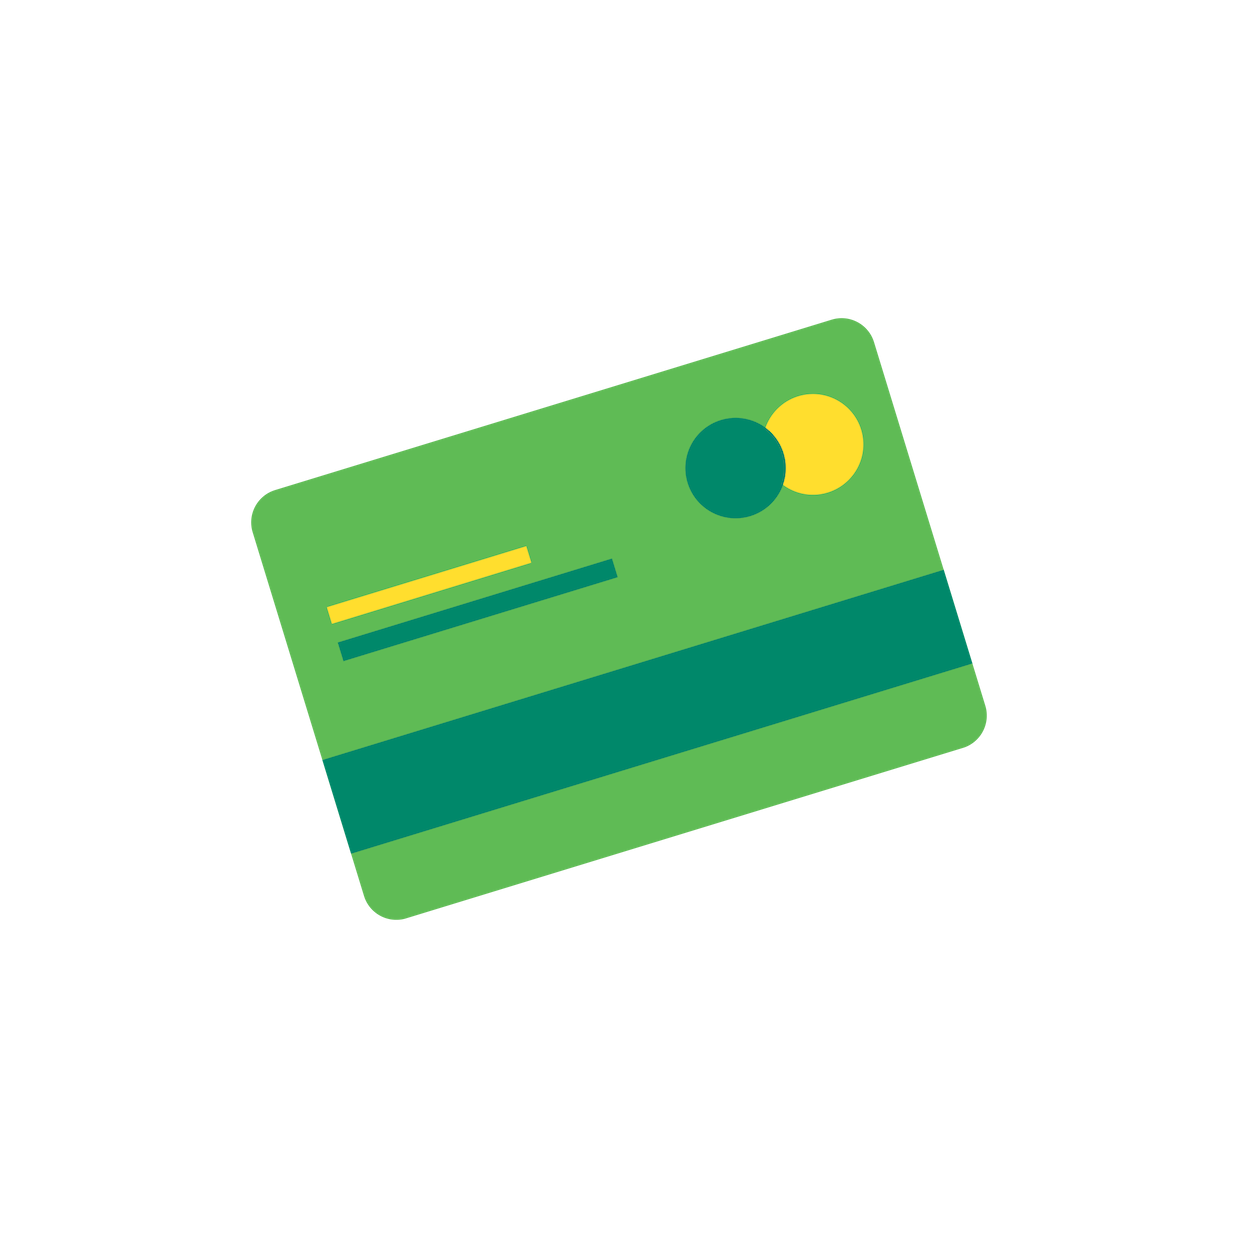 Credit Card_Green.png